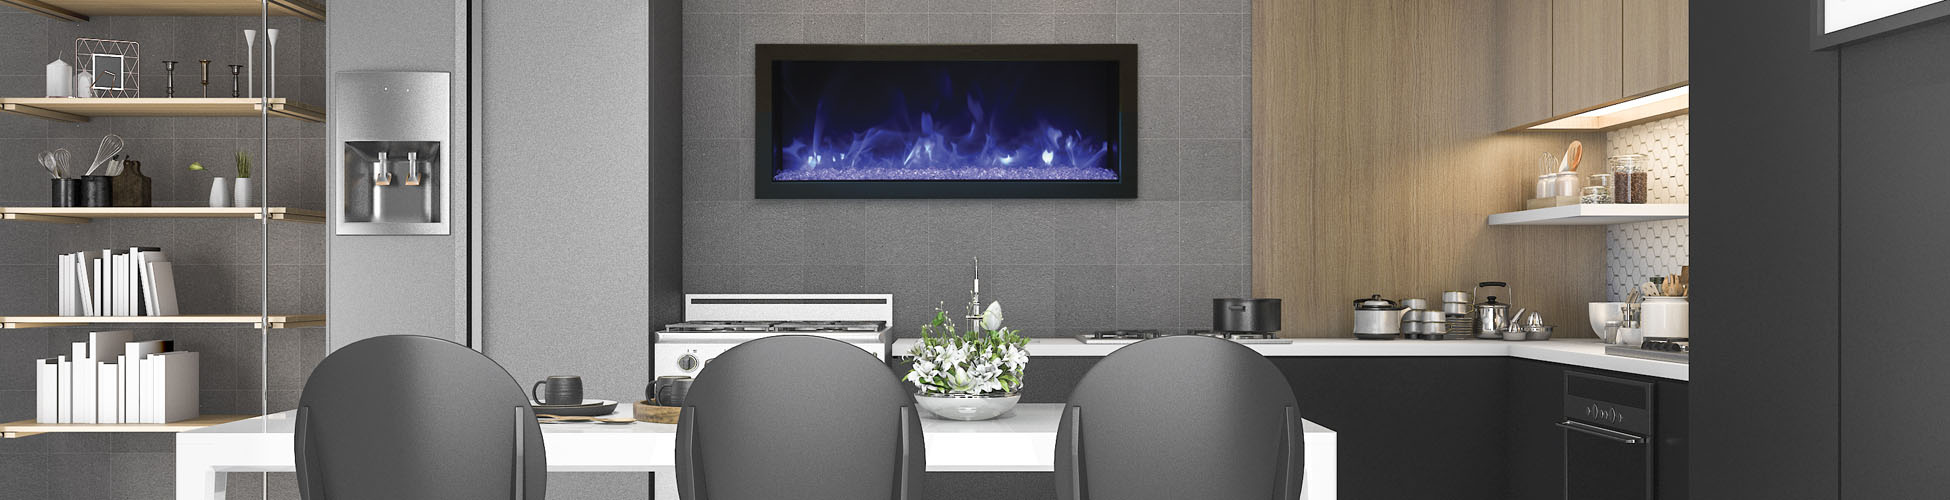 through electric fireplaces frameless cleanview friendly flare fireplace see products fires firesfriendly